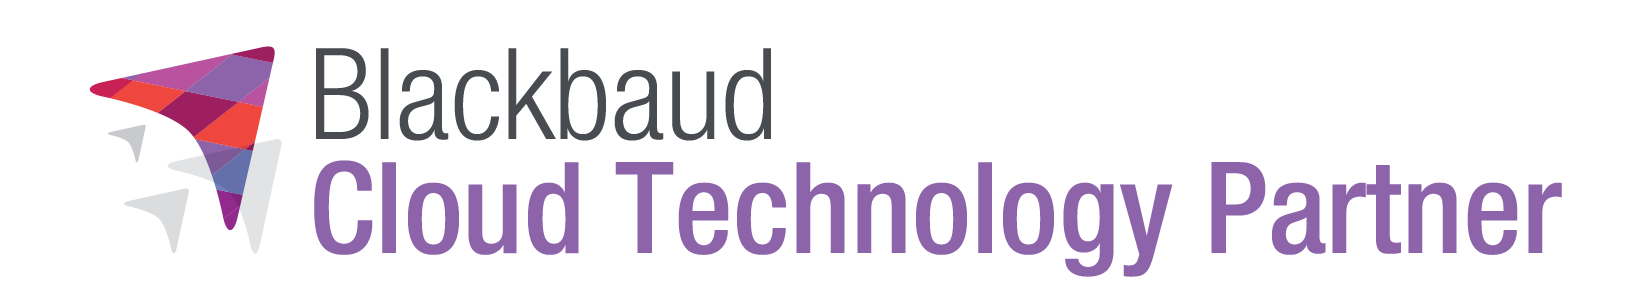 Blackbaud Cloud Technology Partner